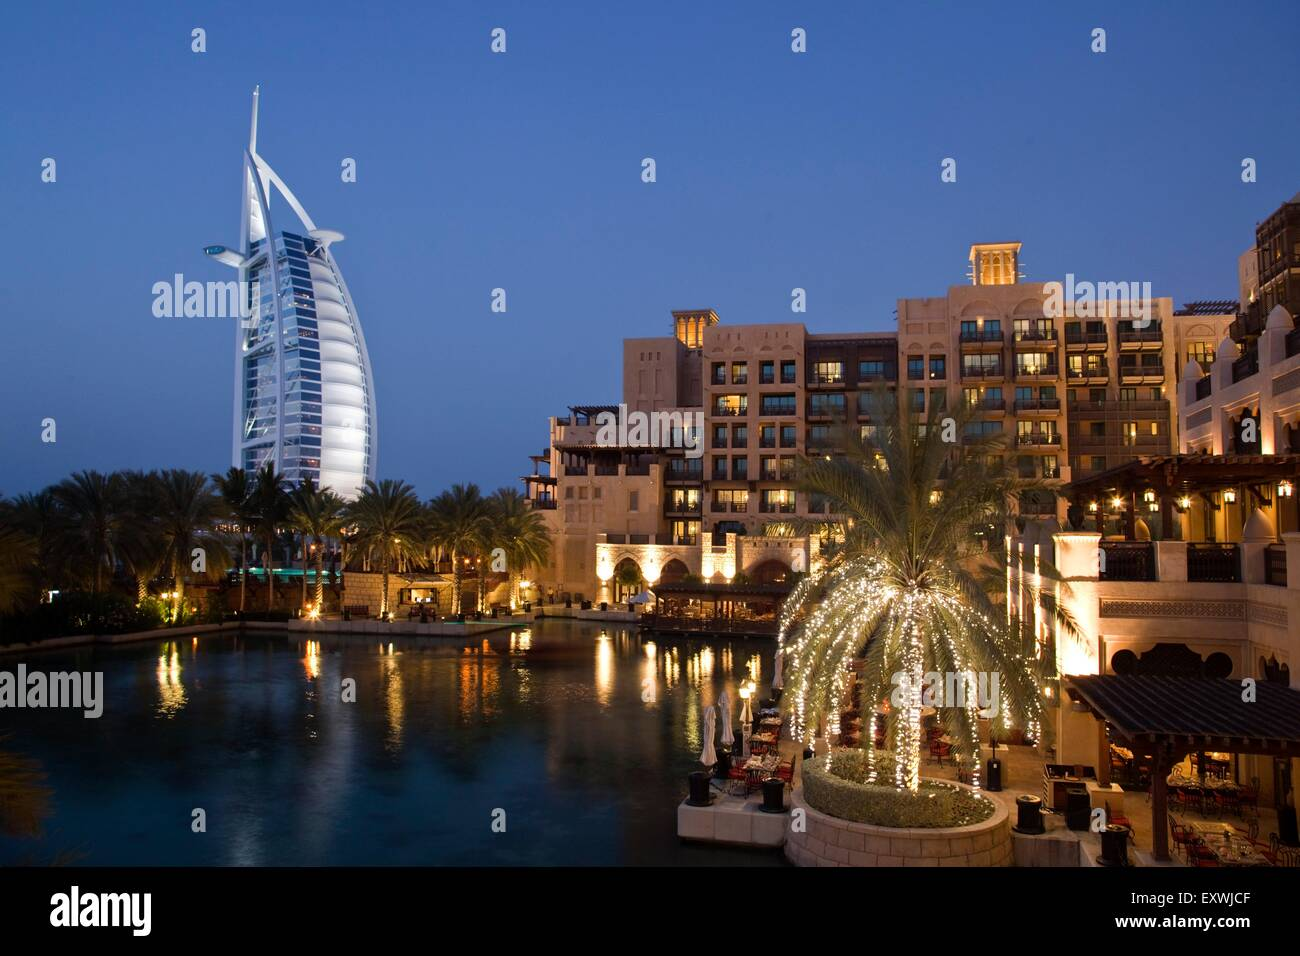 Burj al Arab and Medinat Jumeirah Hotel, Dubai - Stock Image